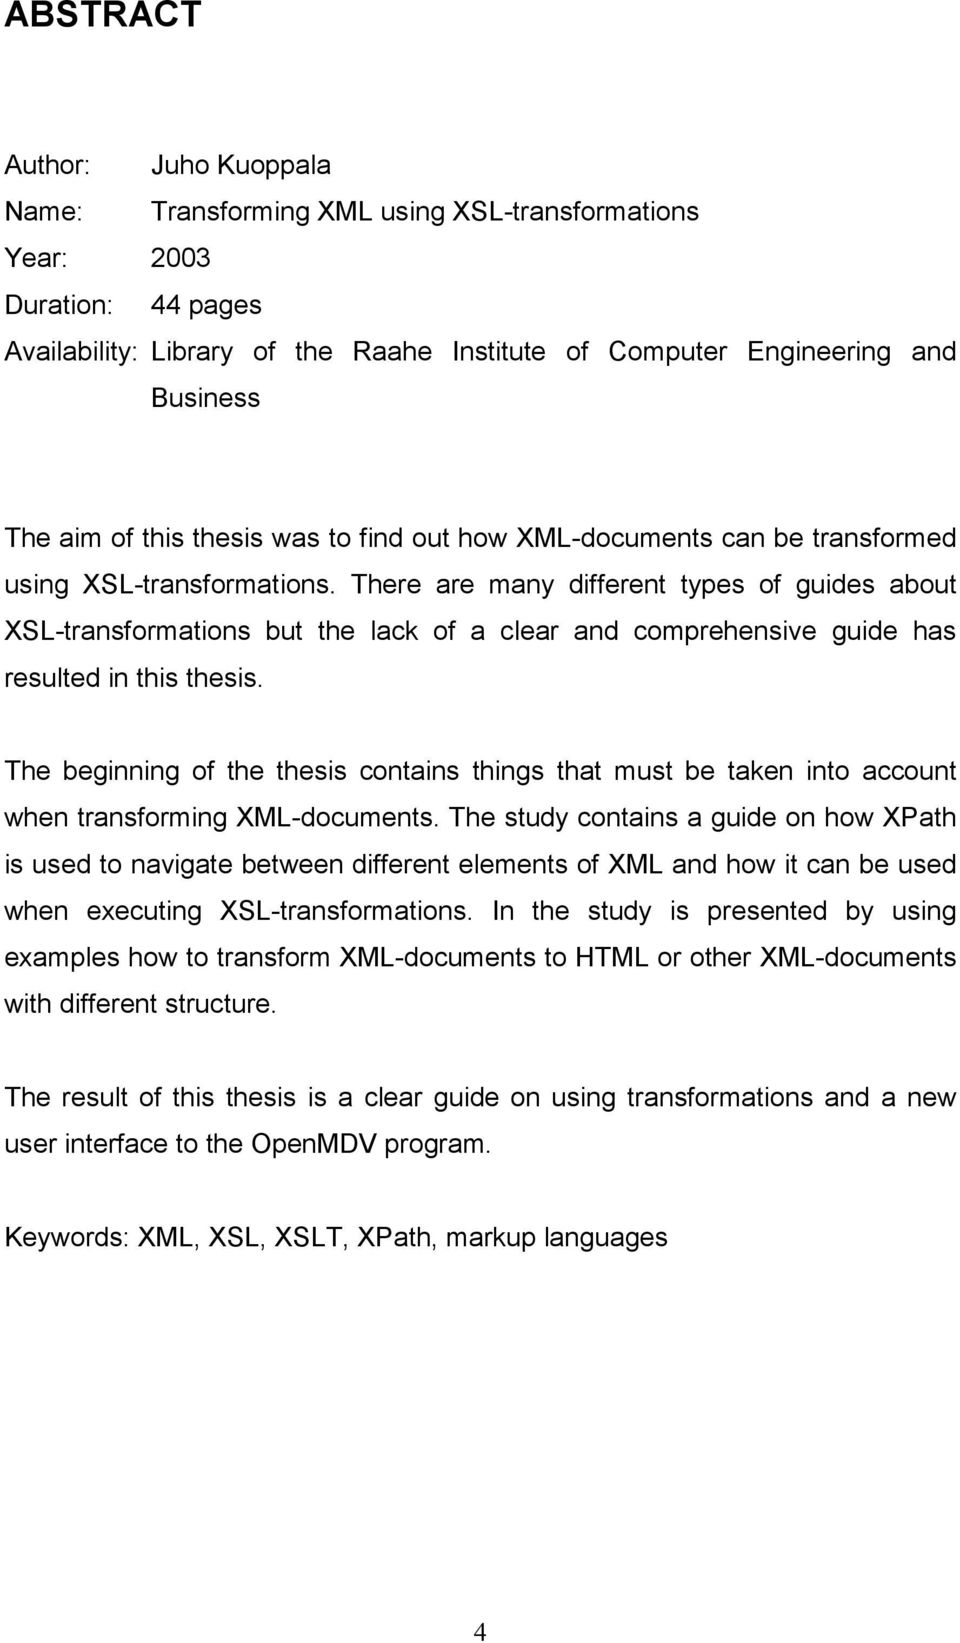 There are many different types of guides about XSL-transformations but the lack of a clear and comprehensive guide has resulted in this thesis.